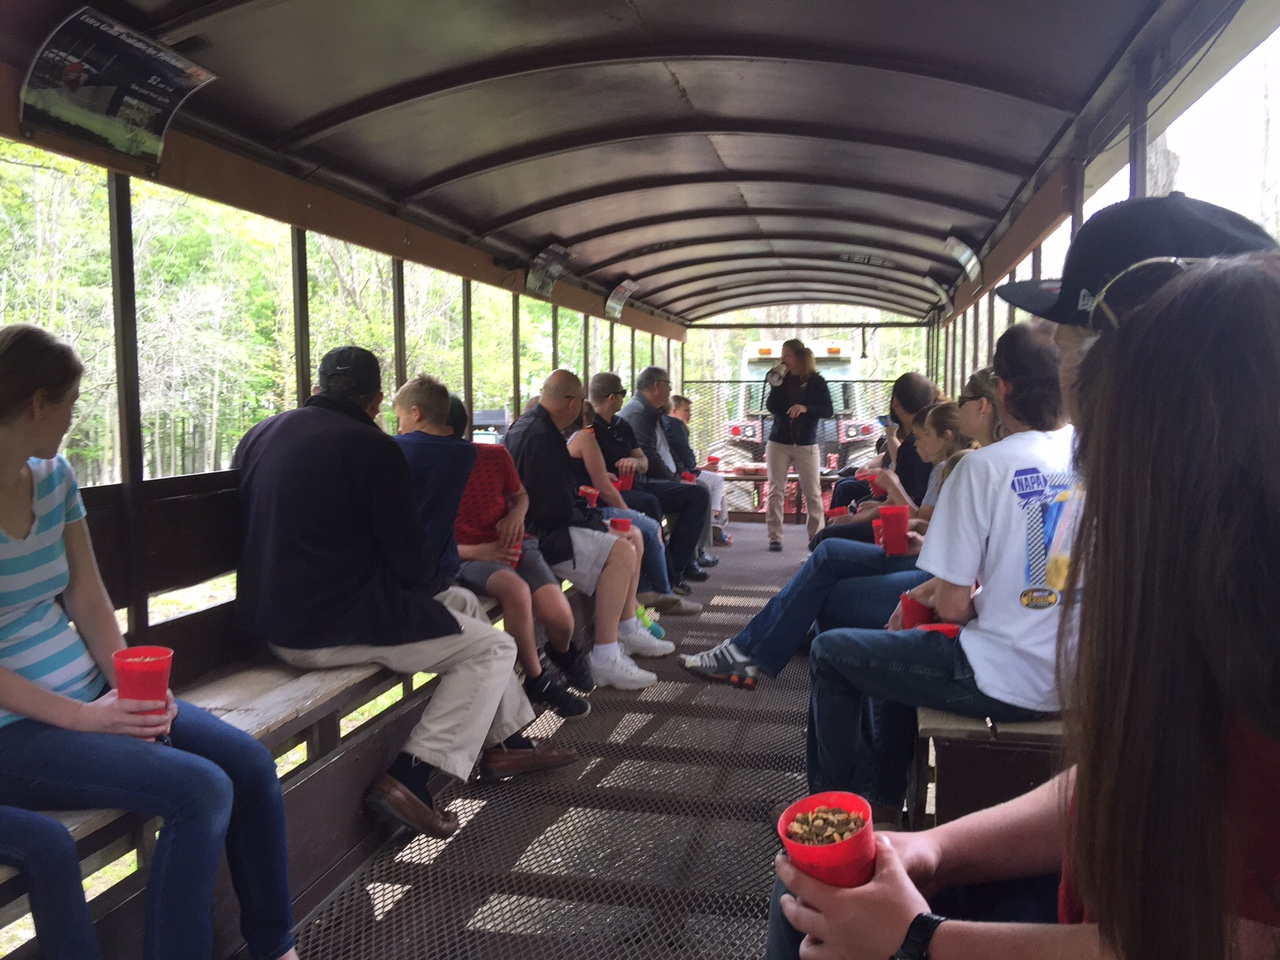 The 55-minute tour is a thrill for guests. Mary Friona-Celani/Special to The News